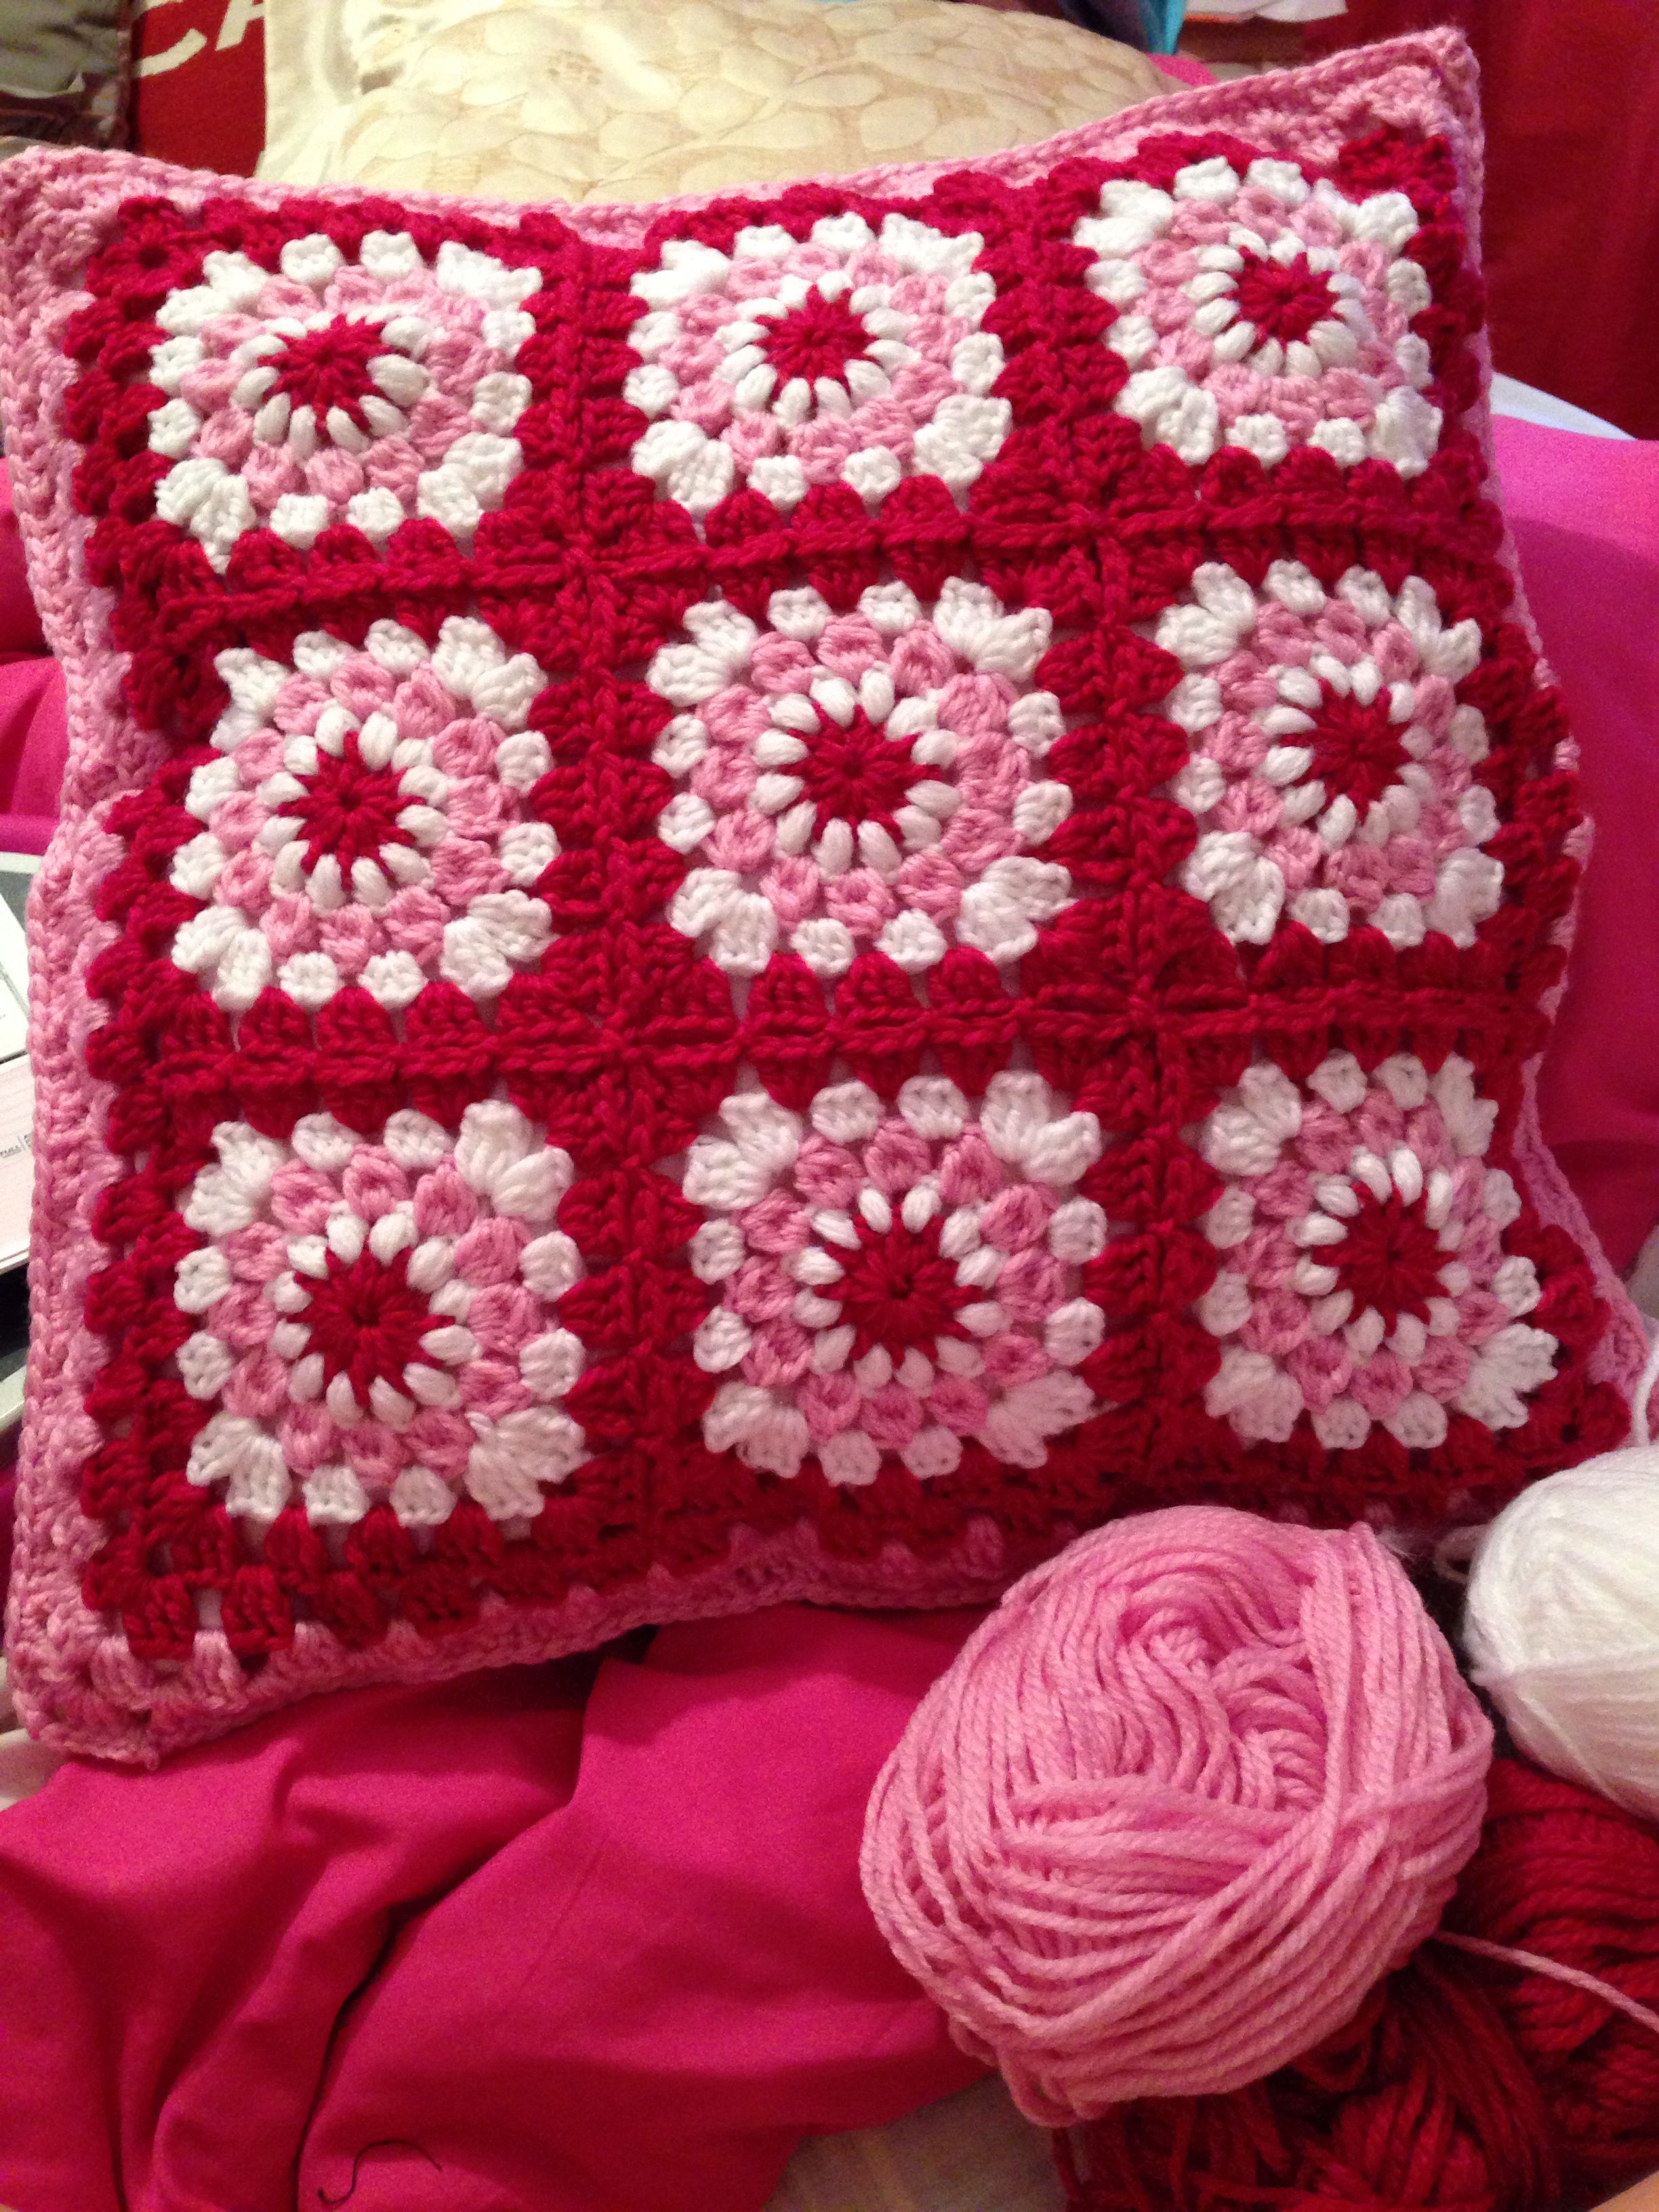 Just Finished Crocheting My Granny Square Cushion Based On Youtube